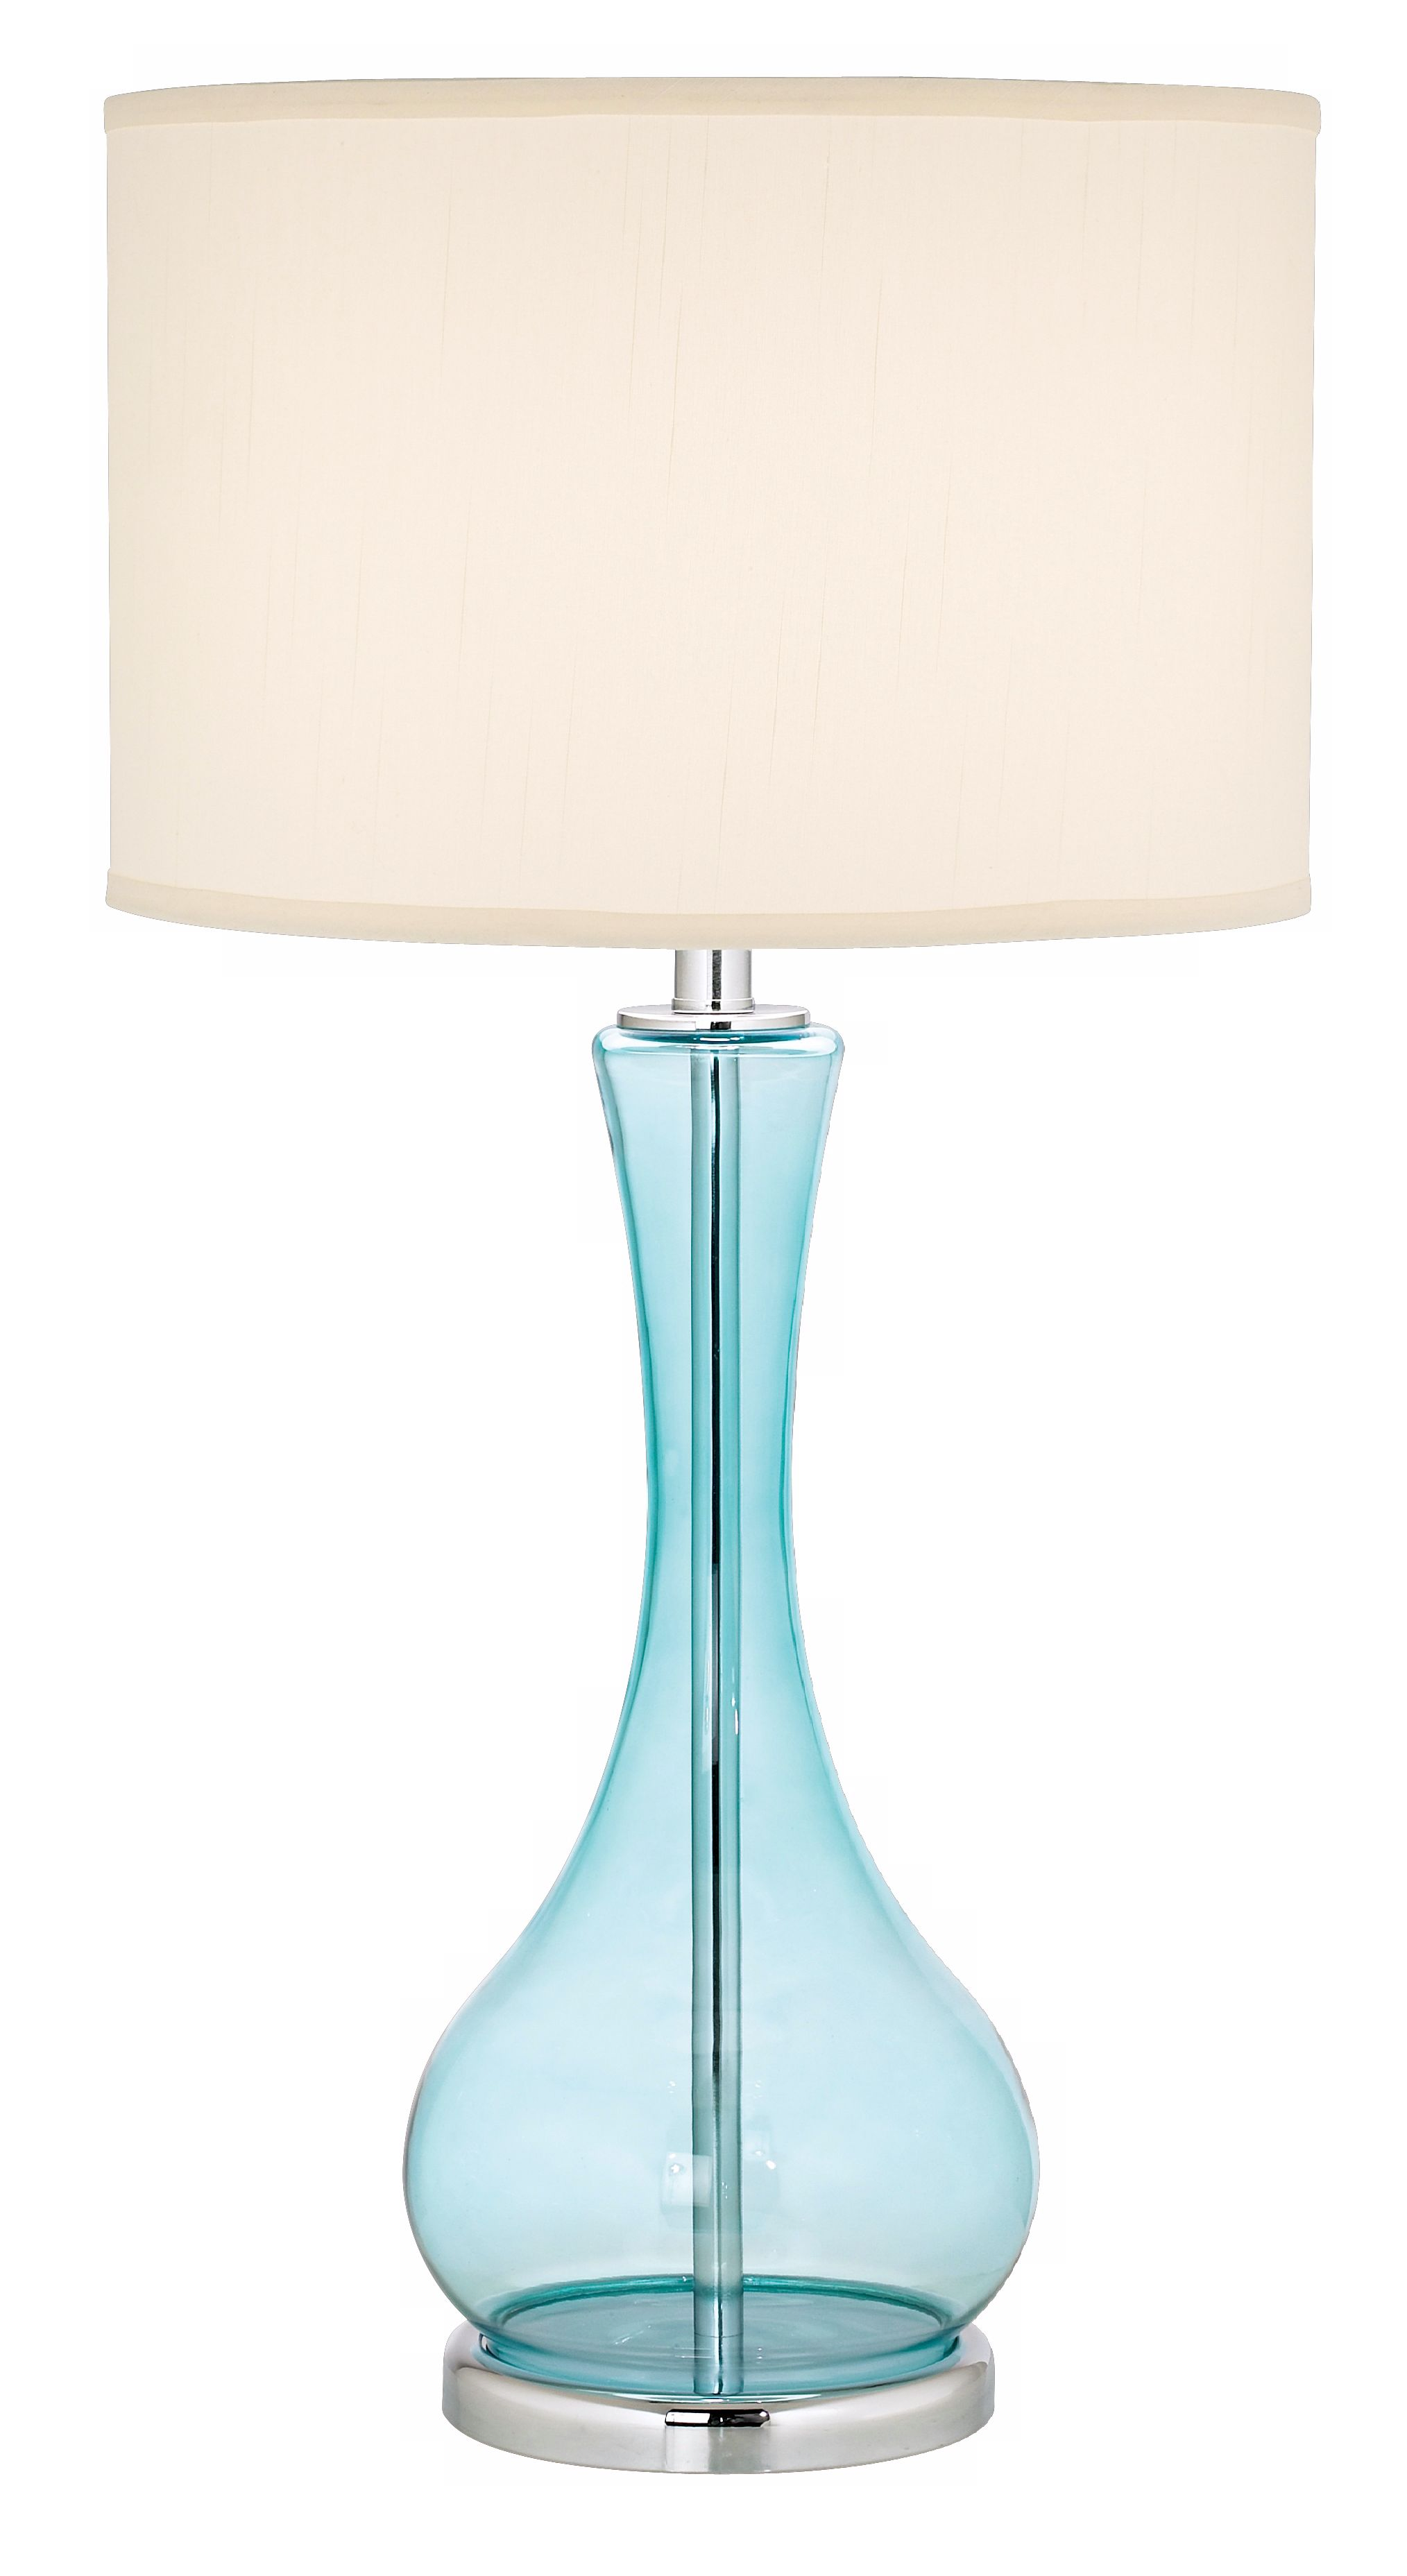 Blue Glass Lamp Bedroom Table Lamps Under 150 Hgtvu0027s